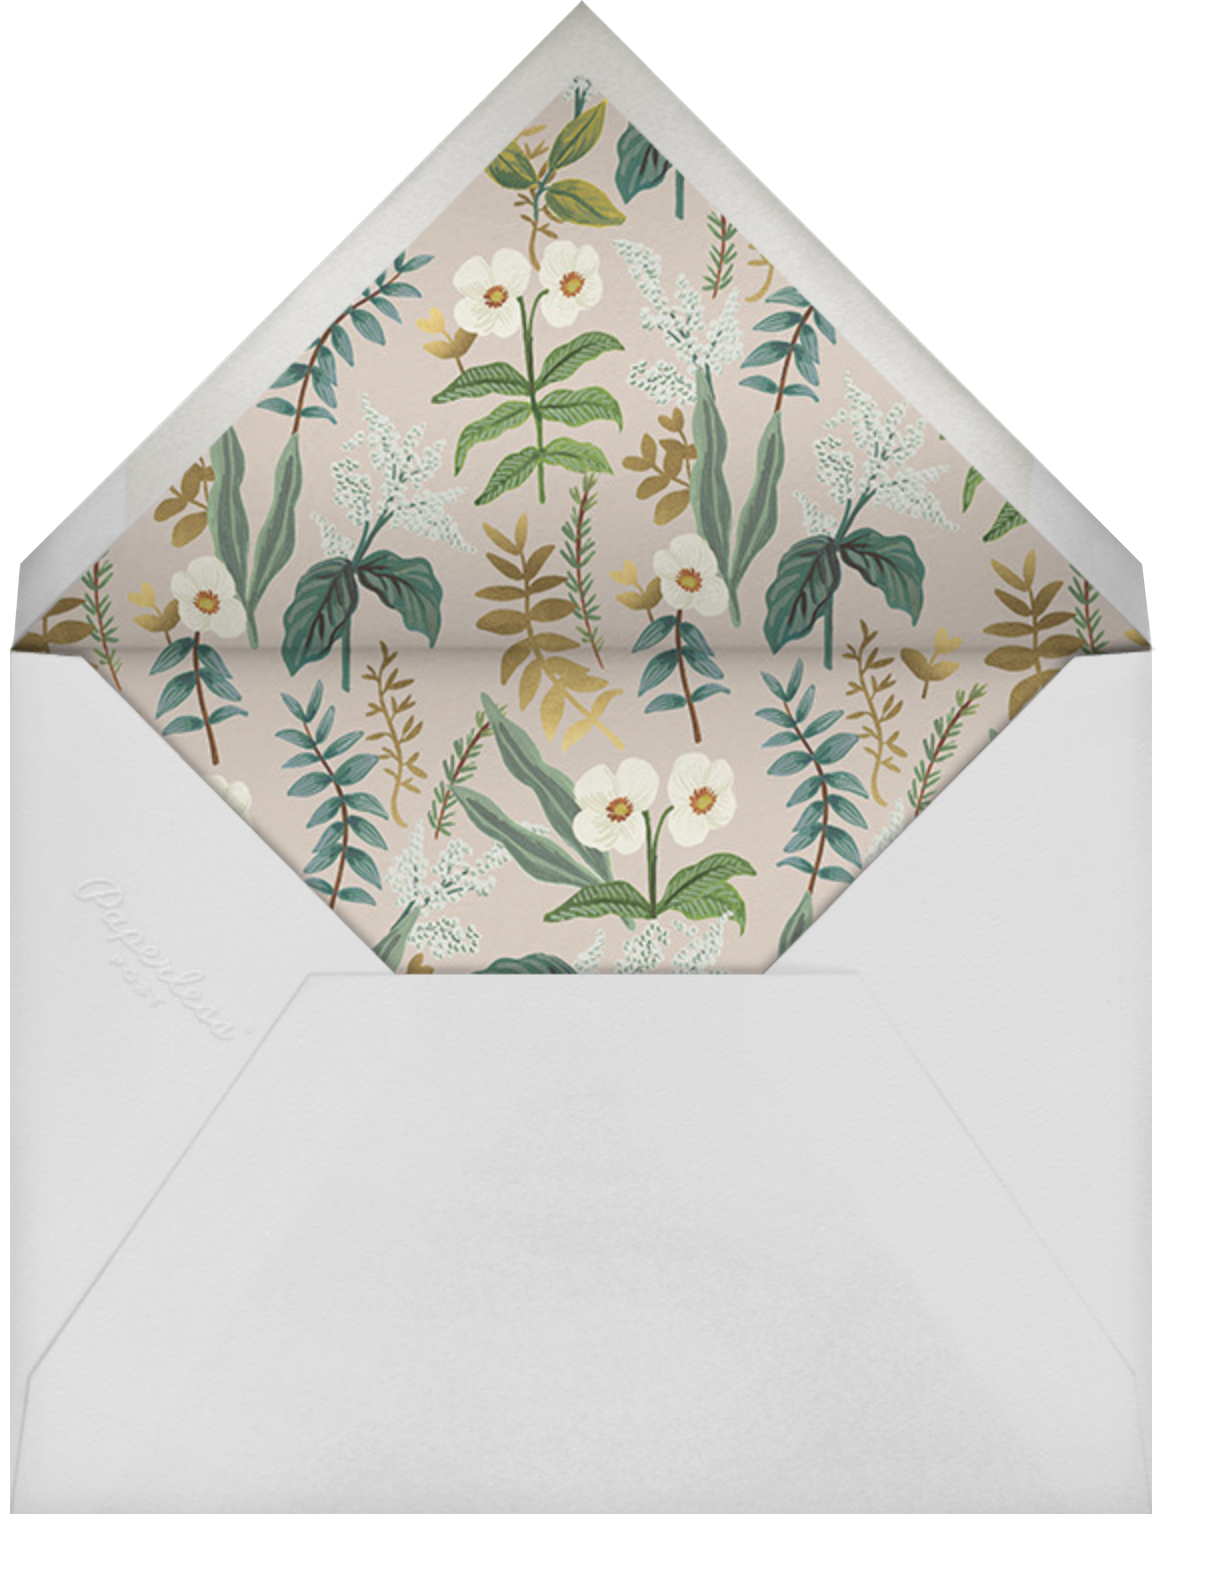 Meadow Garland Photo - Rifle Paper Co. - Birth - envelope back